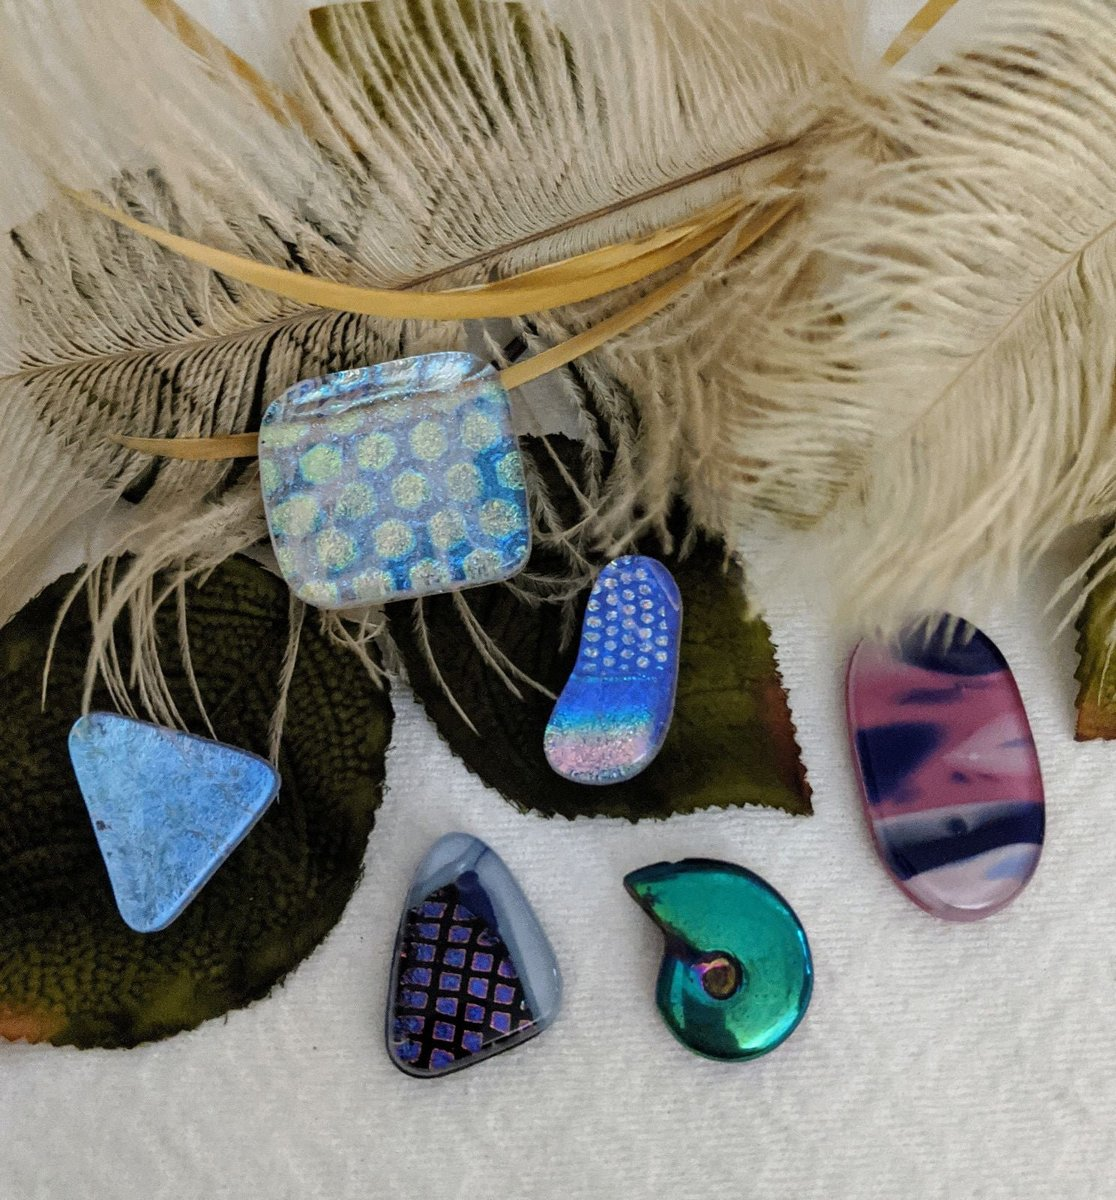 Sharing for Debbie Whitaker on Etsy  Really love this, from the Etsy shop OneOfaKindHardToFind. https://t.co/JusQiyfSNu #etsy #dichroic #glass #cabochons #jewelrymaking #supplies #unique #ooak #oneofakind #jewelrysupplies https://t.co/Tza2Fda3PX